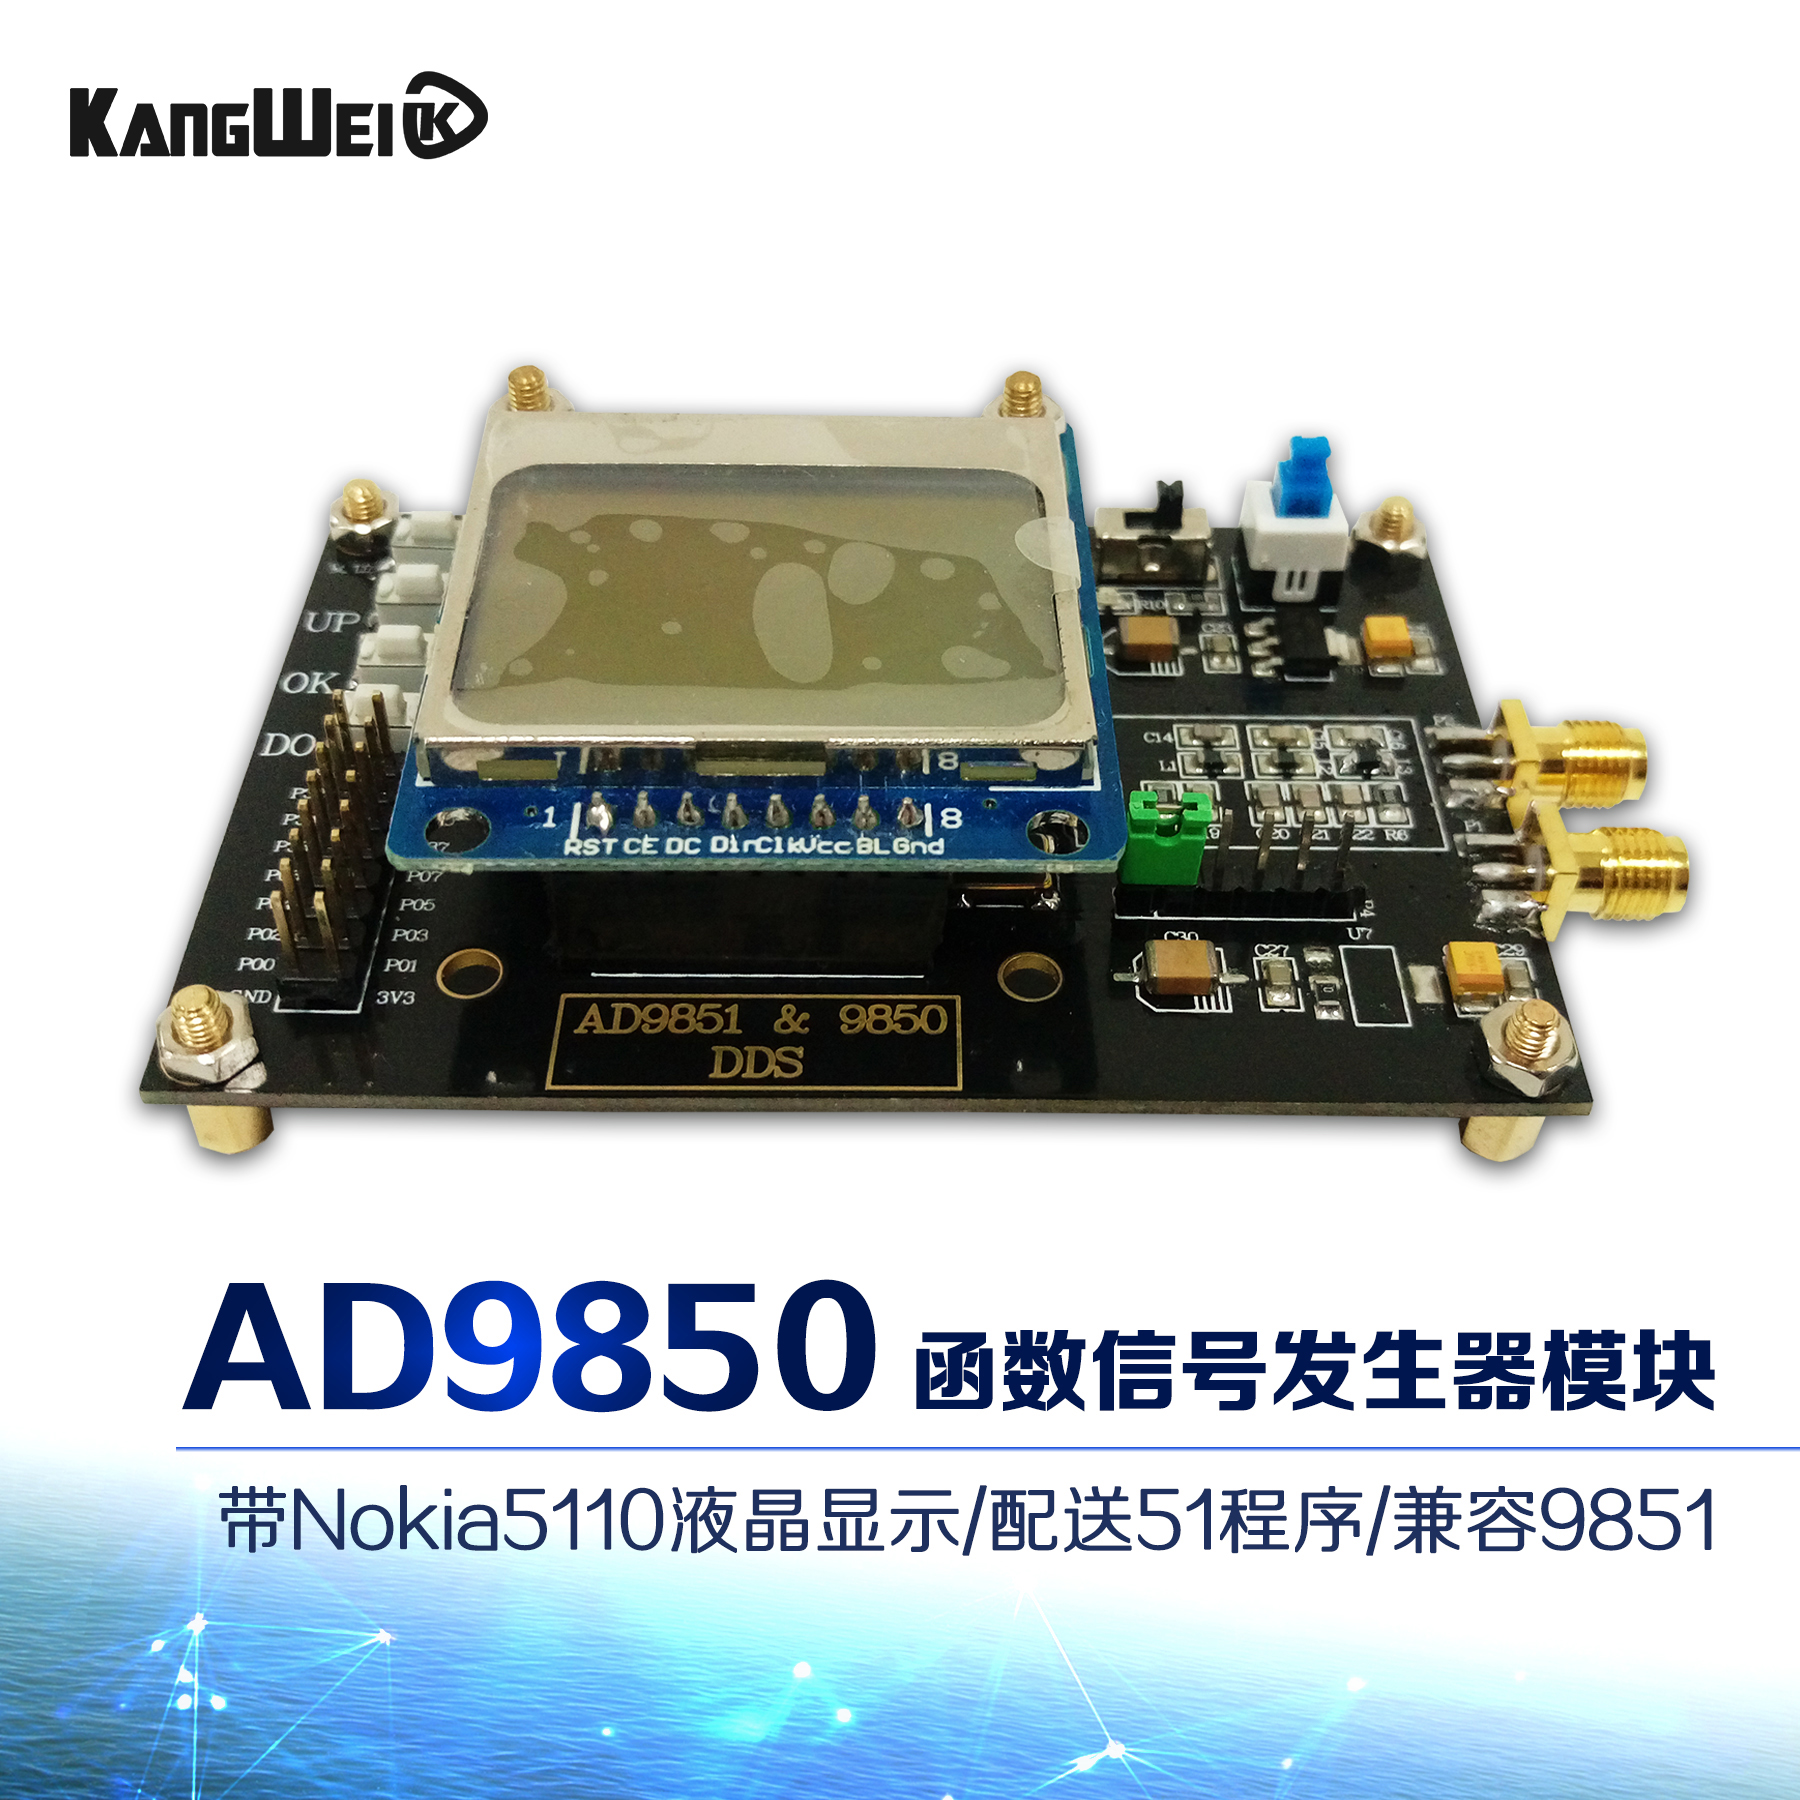 AD9850 module DDS function signal generator is compatible with 9851 band Nokia5110 signal generator dds module dds signal source ad9850 0 30m